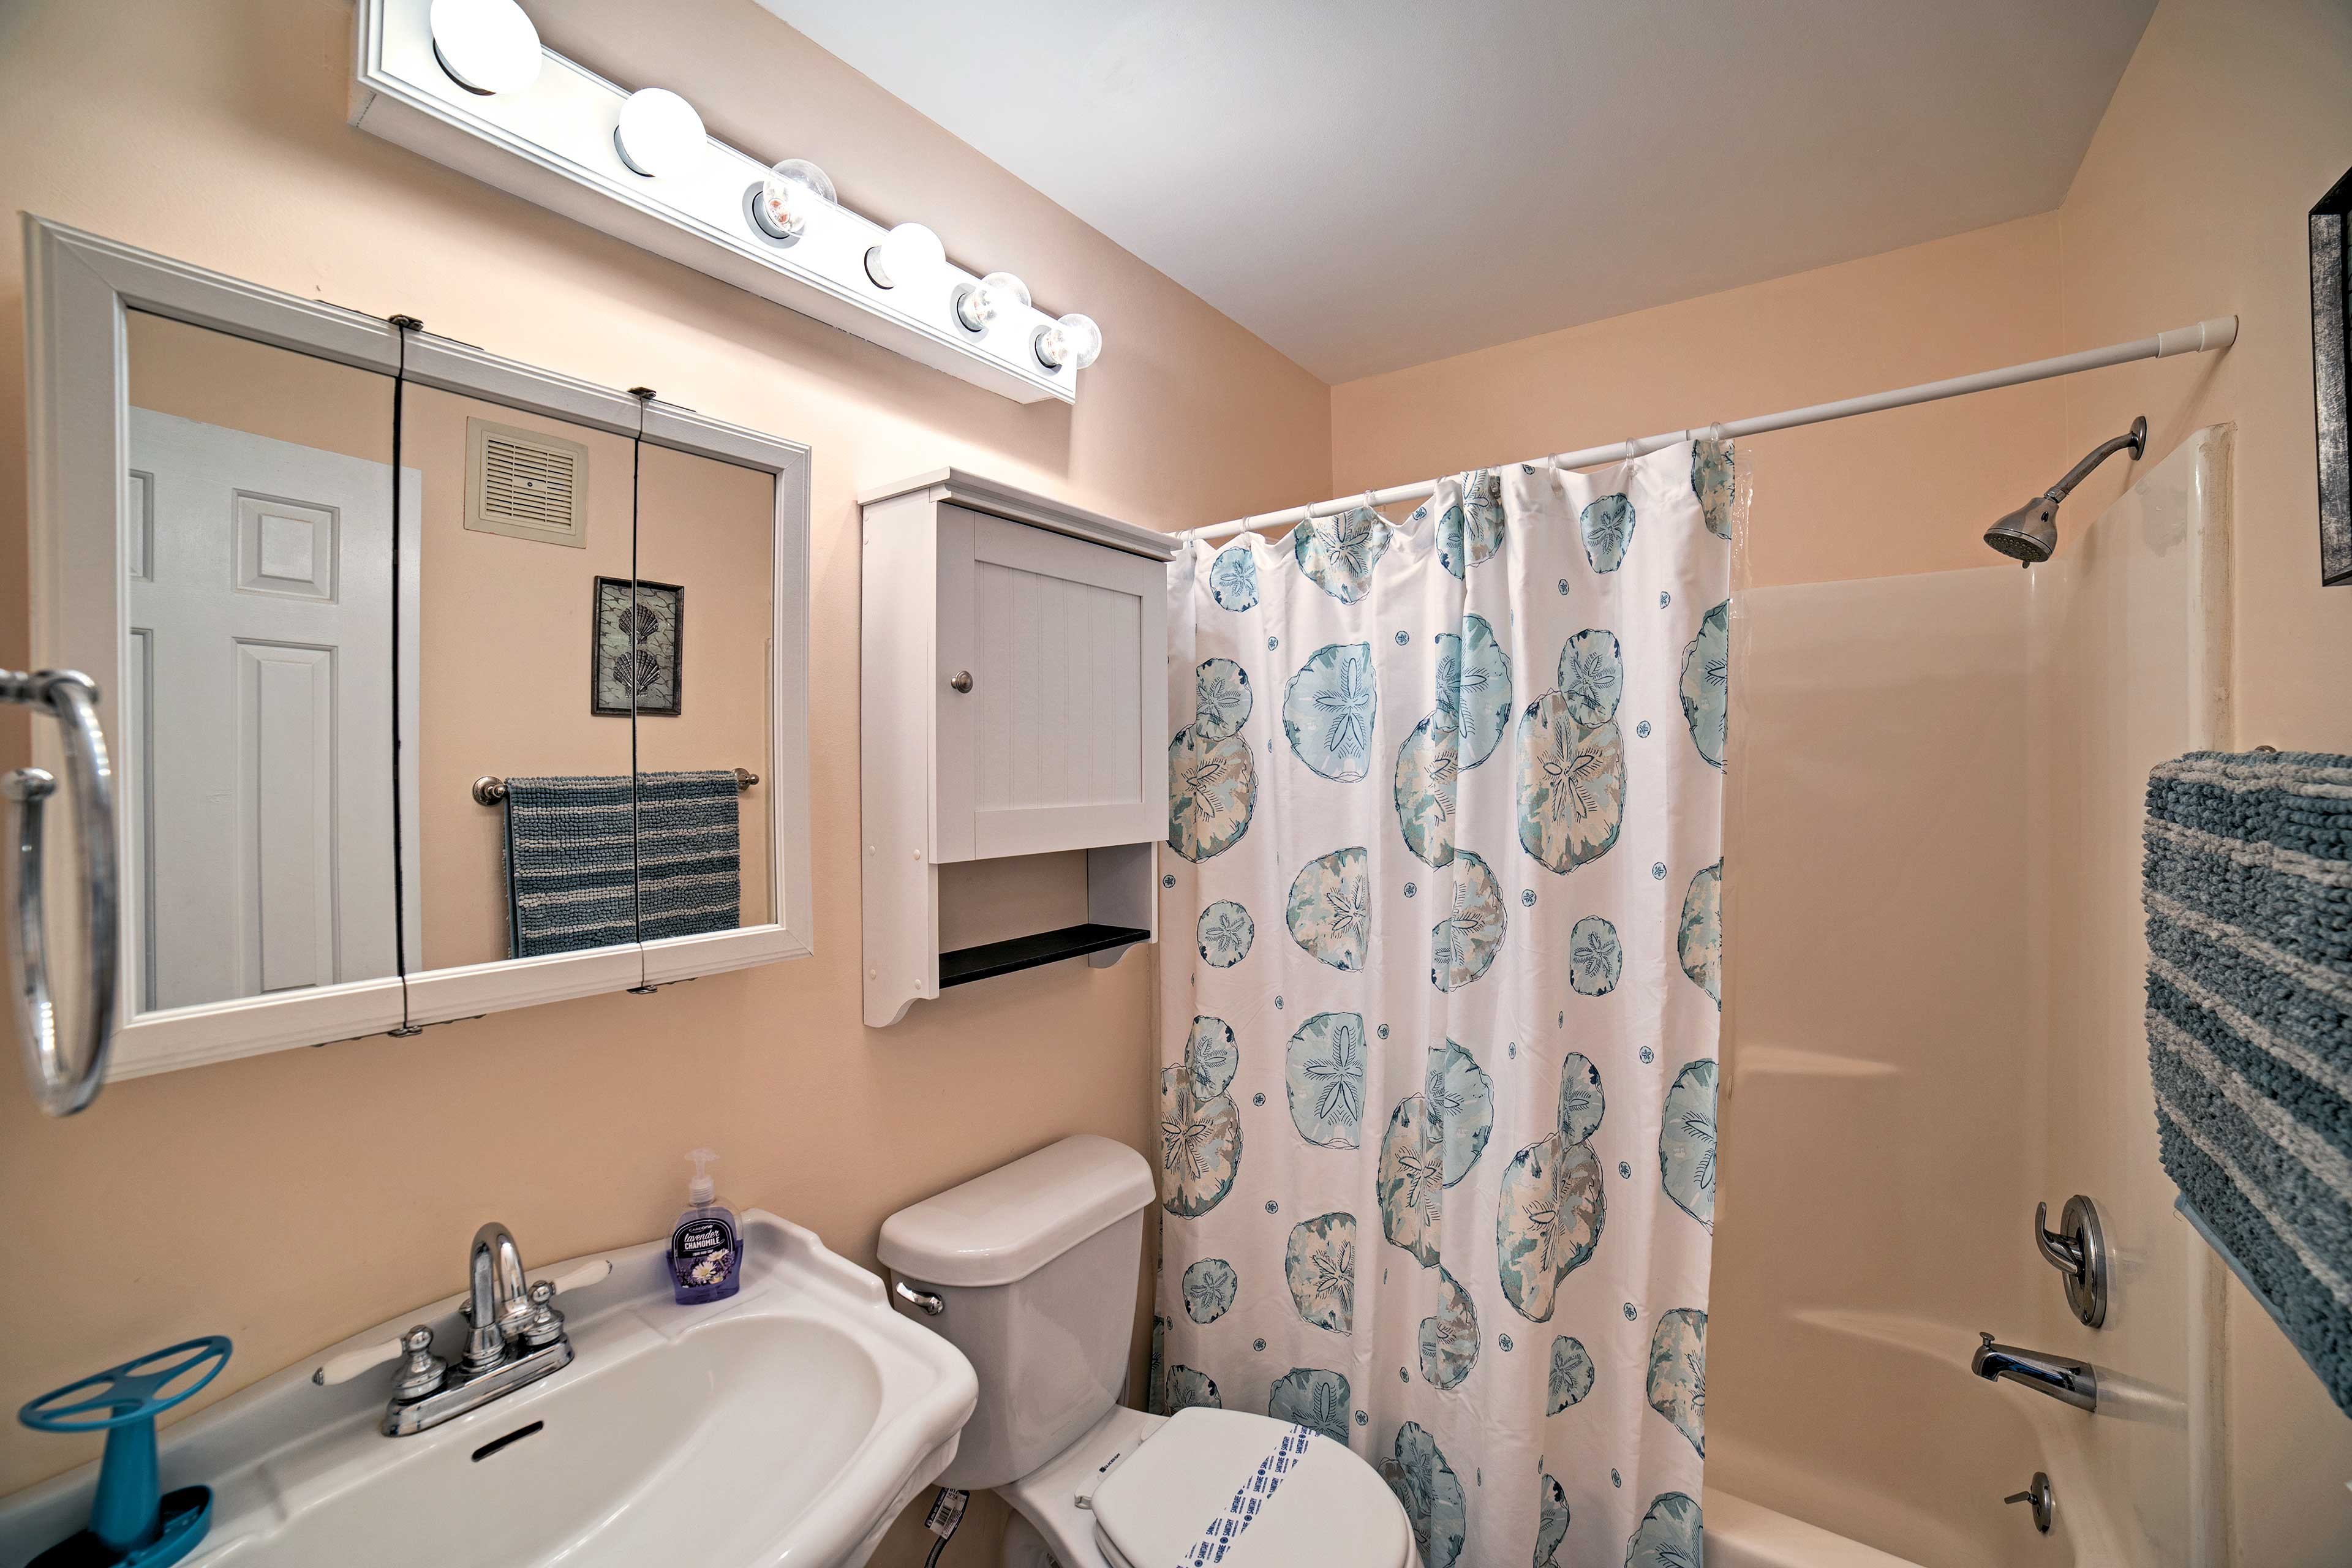 Wake up with a refreshing shower in the master bathroom.